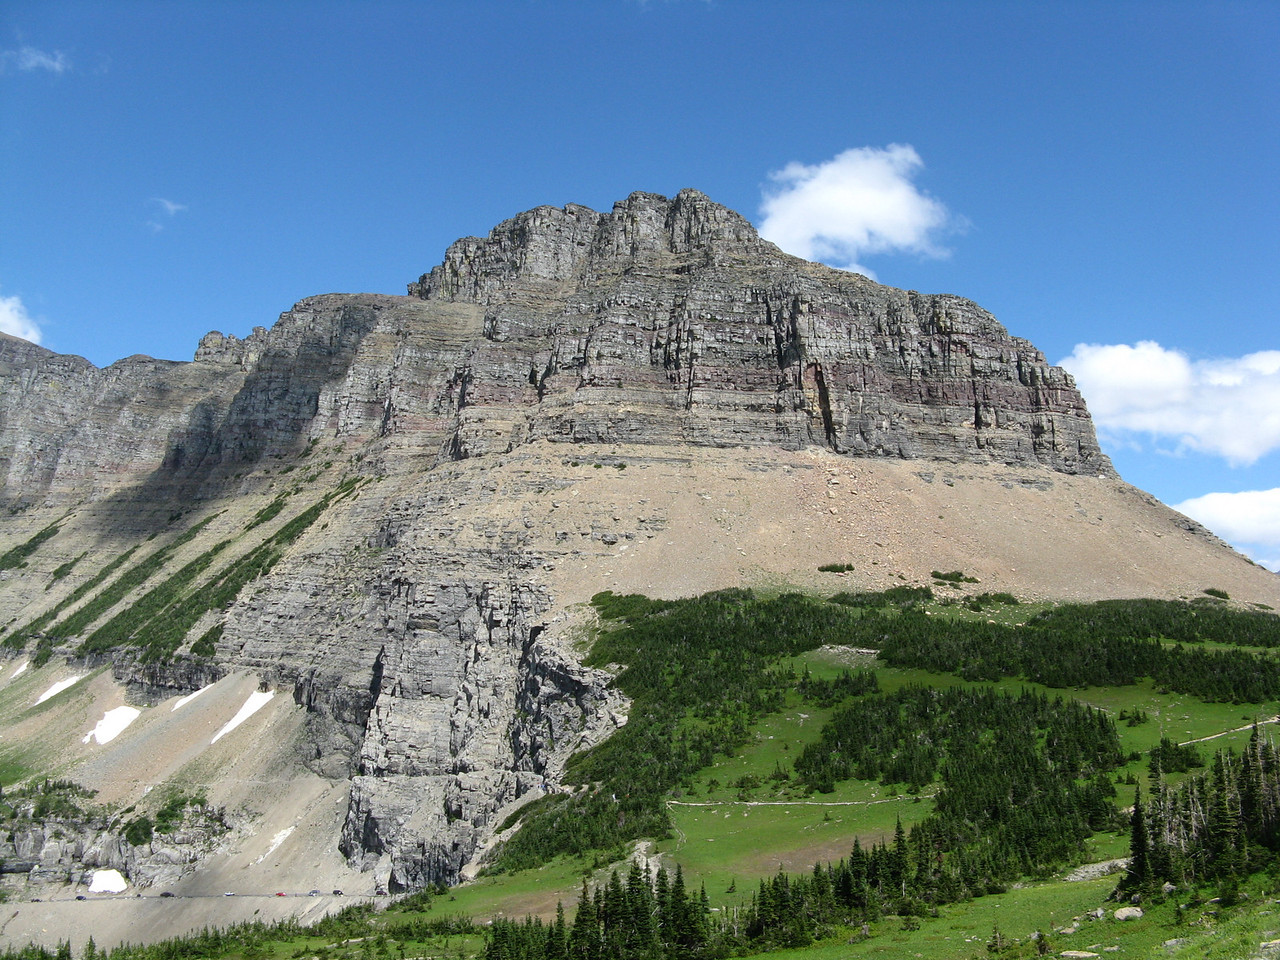 Looking north from just west of Logan Pass, the ridge that stretches for miles in a northward direction is called the Garden Wall.  The road is a thin line near the bottom left side of the image.  The Highline Trail is the white line in the green meadow in the lower right quadrant of the picture.